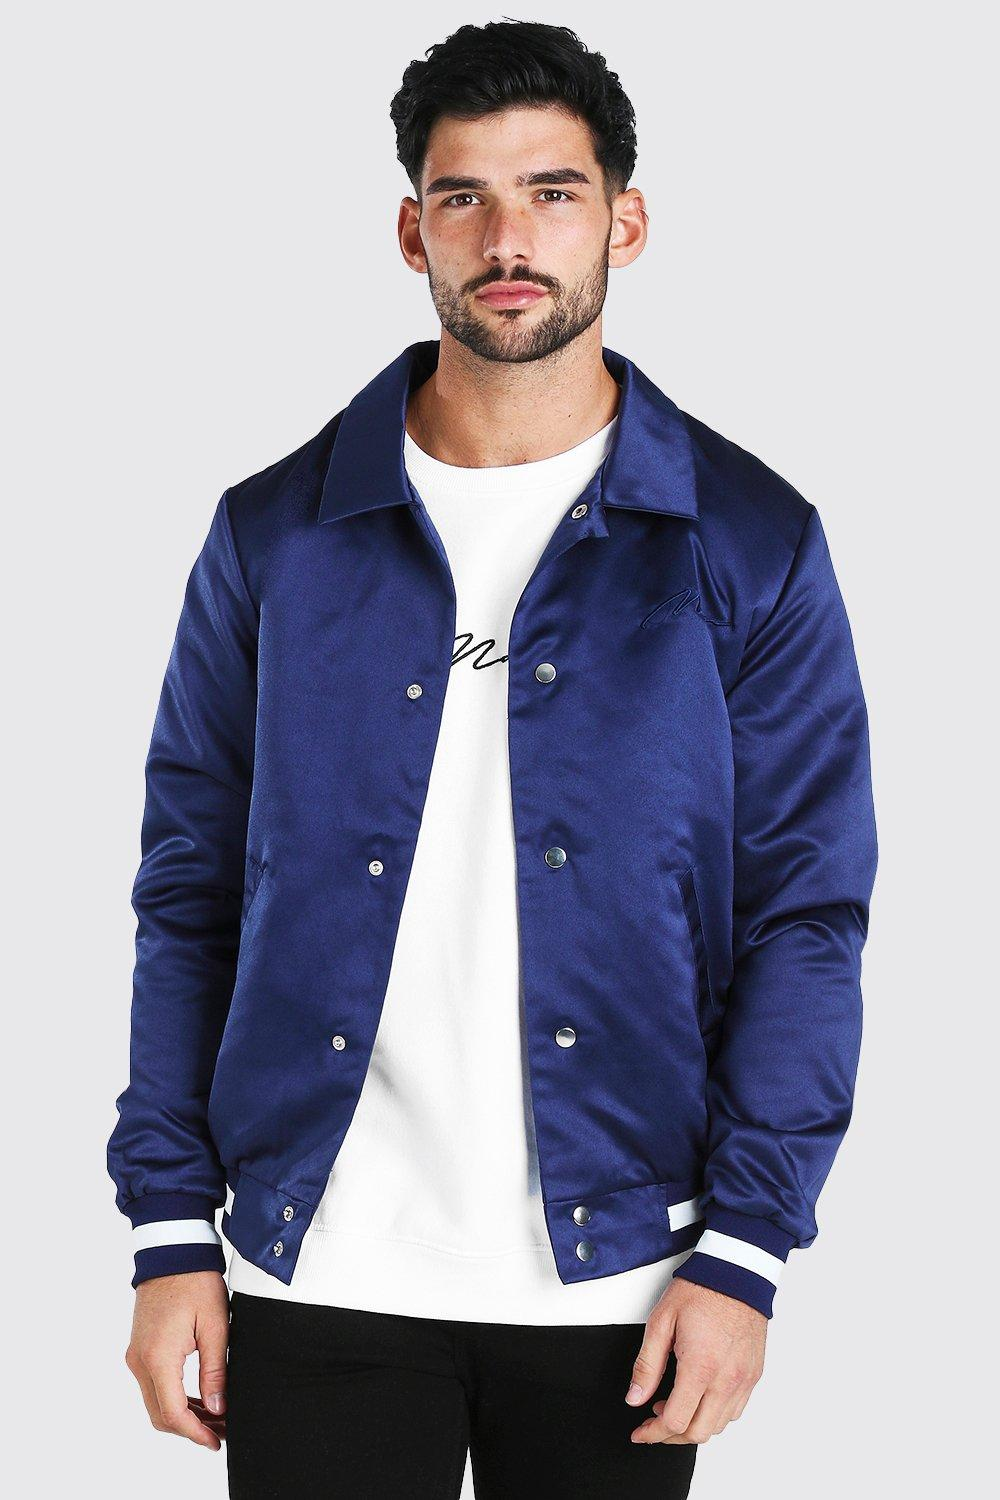 mens satin coach jacket with chest man embroidery - navy